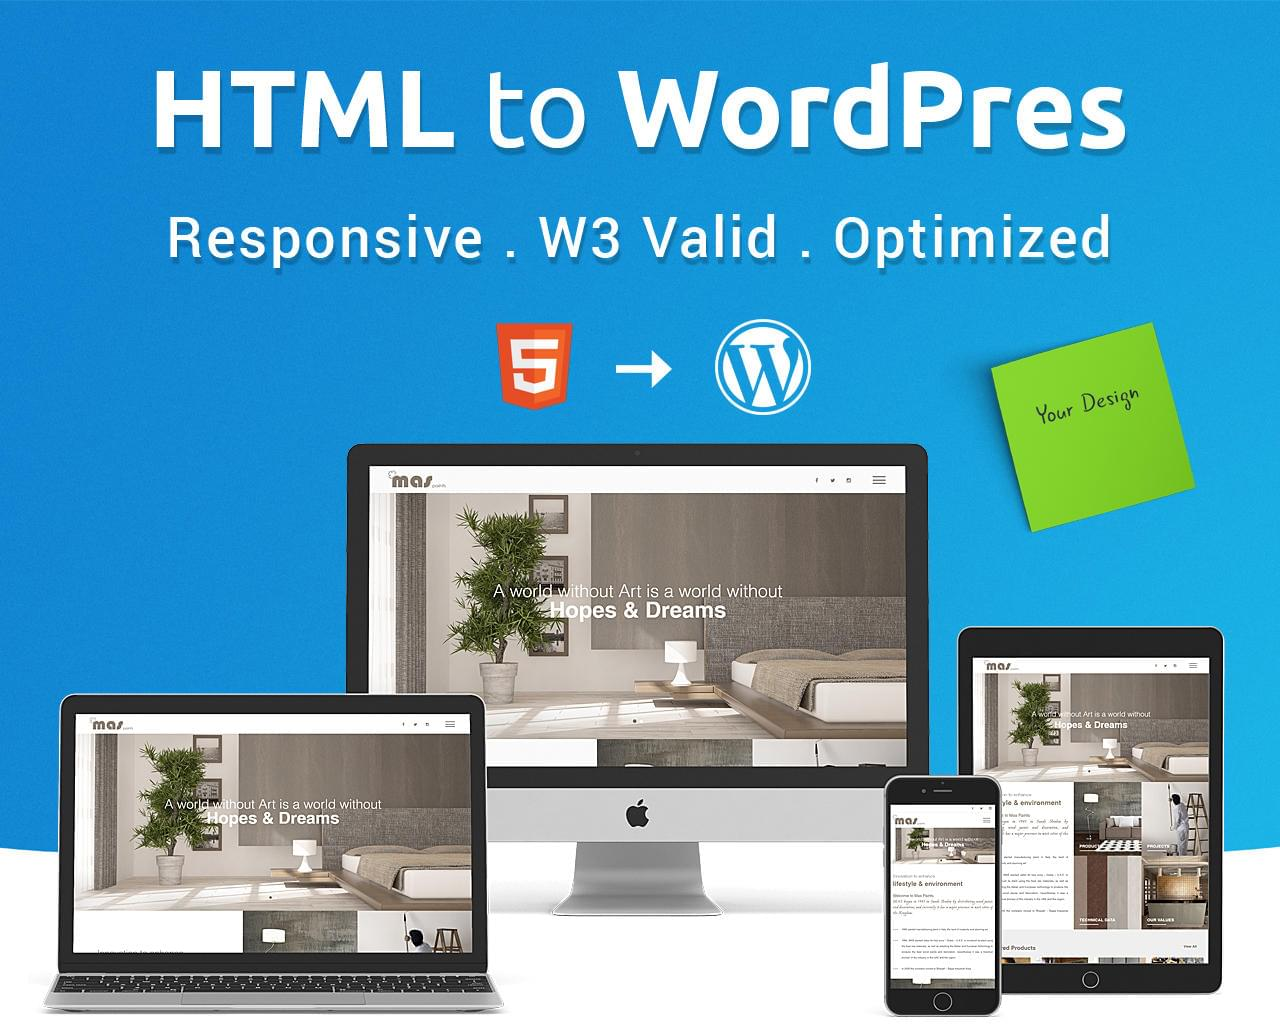 HTML to WordPress 2 Pages (1 Home + 1 Inner Page) by DeCodeUI - 114082